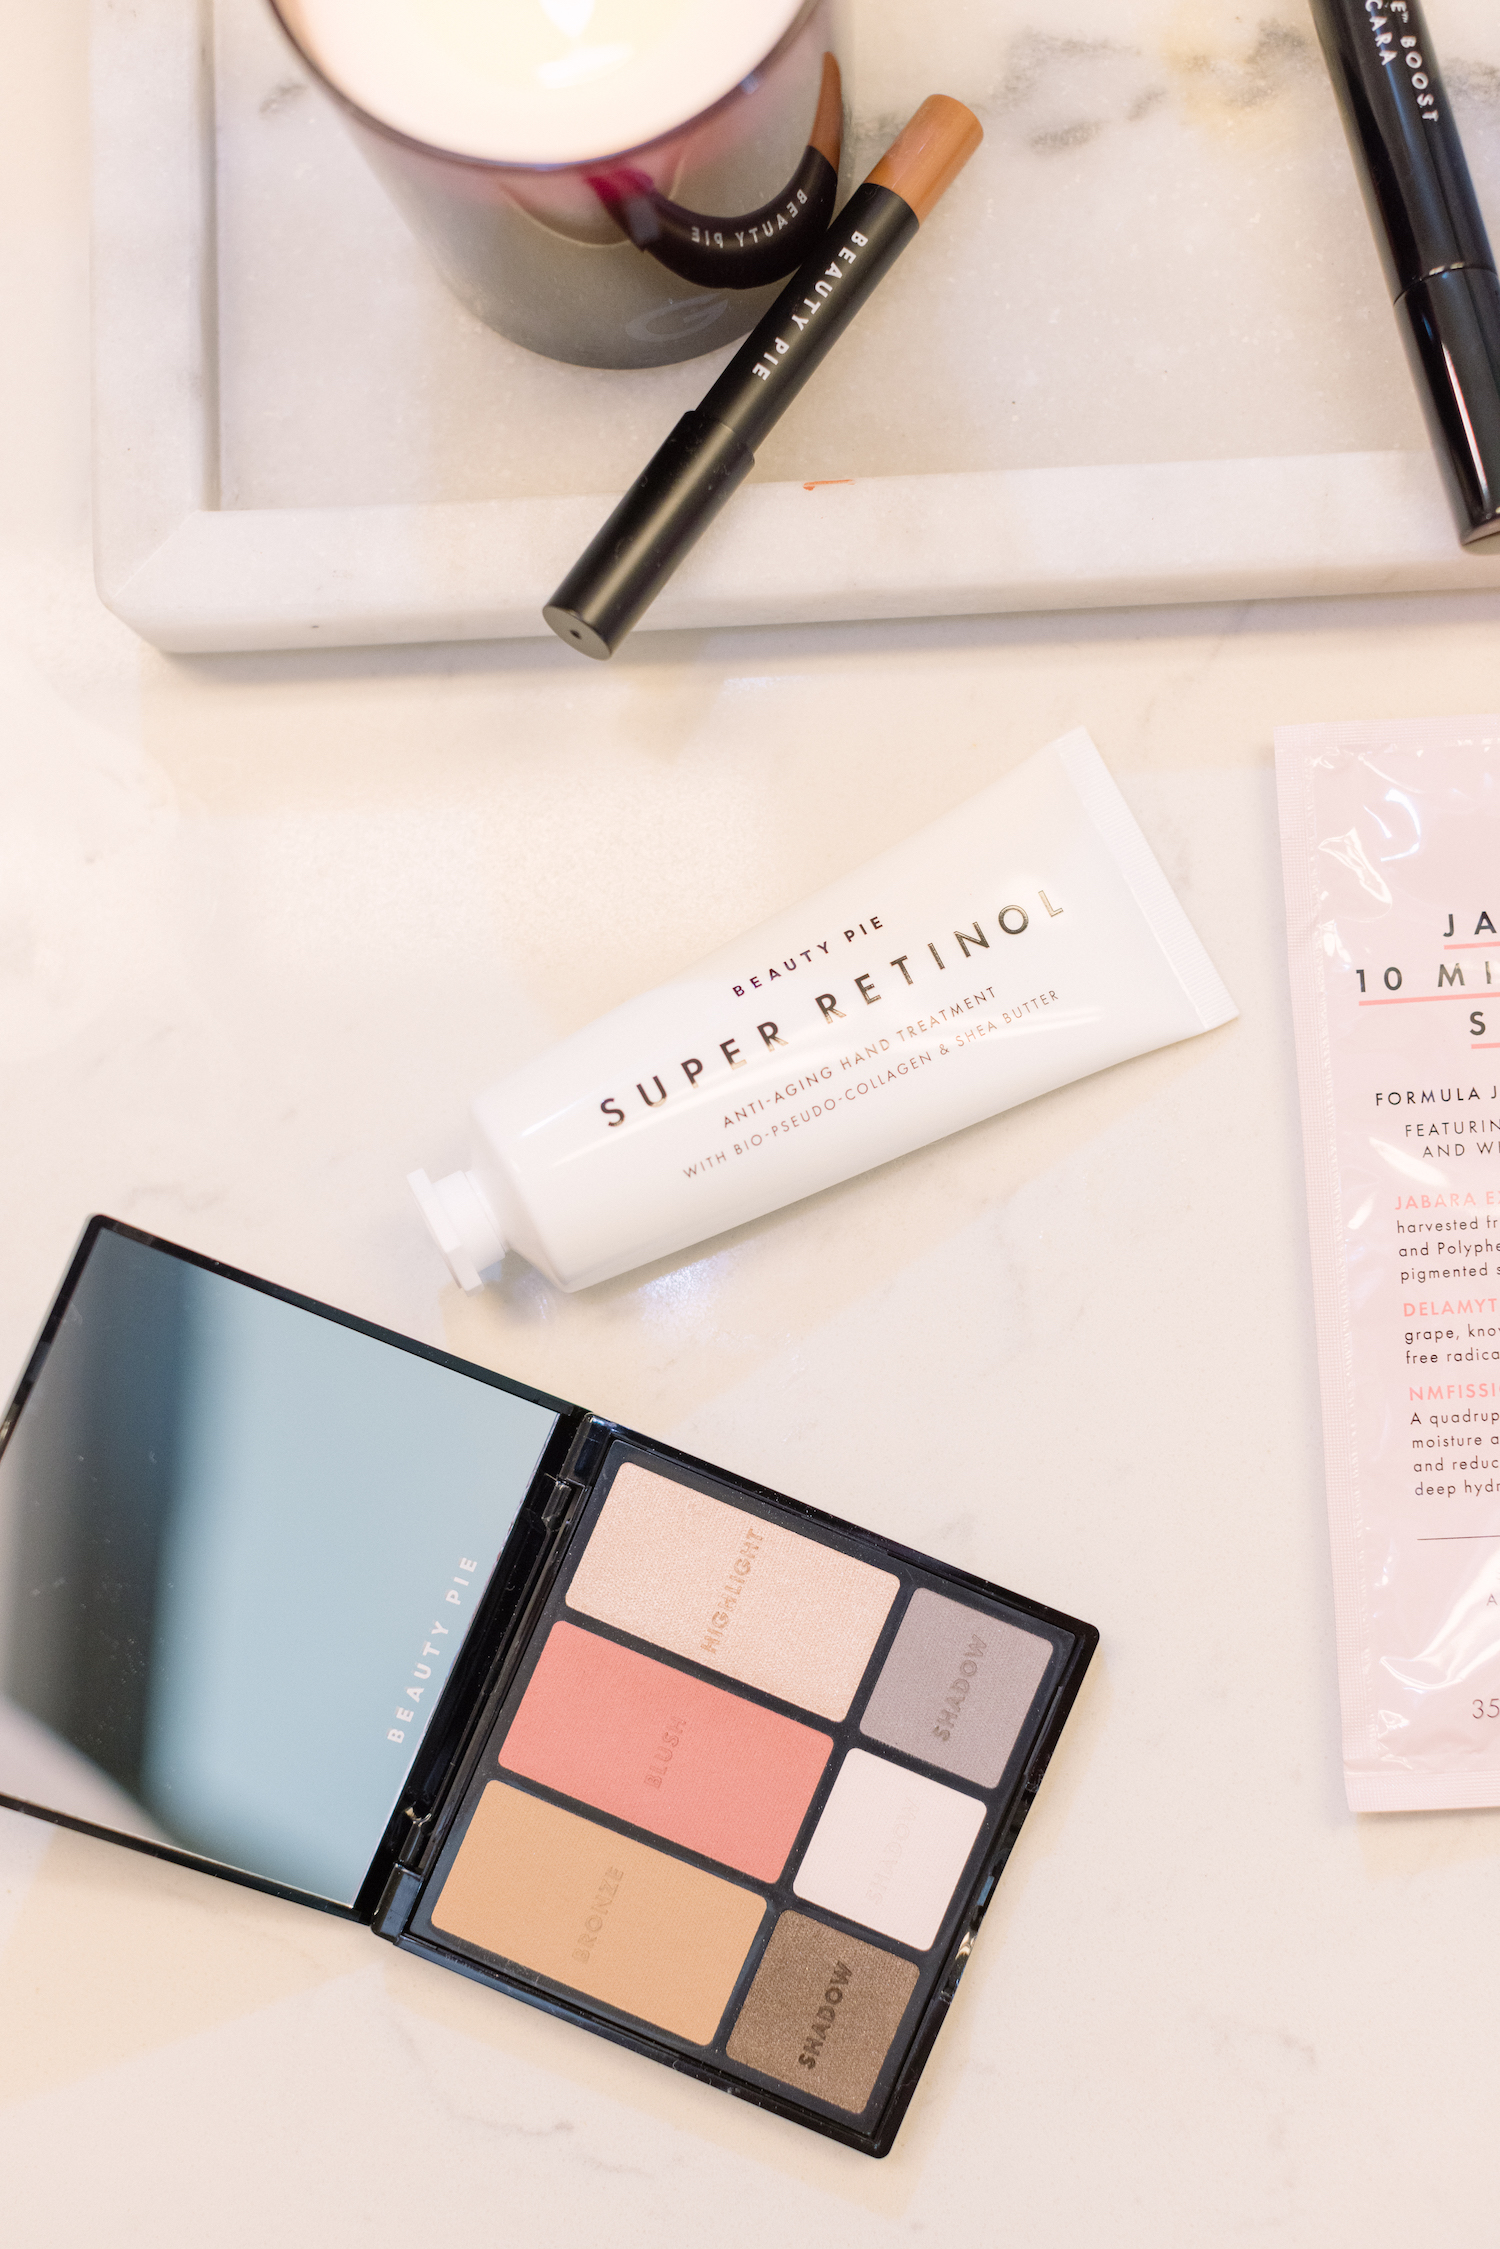 BeautyPie skincare and makeup review